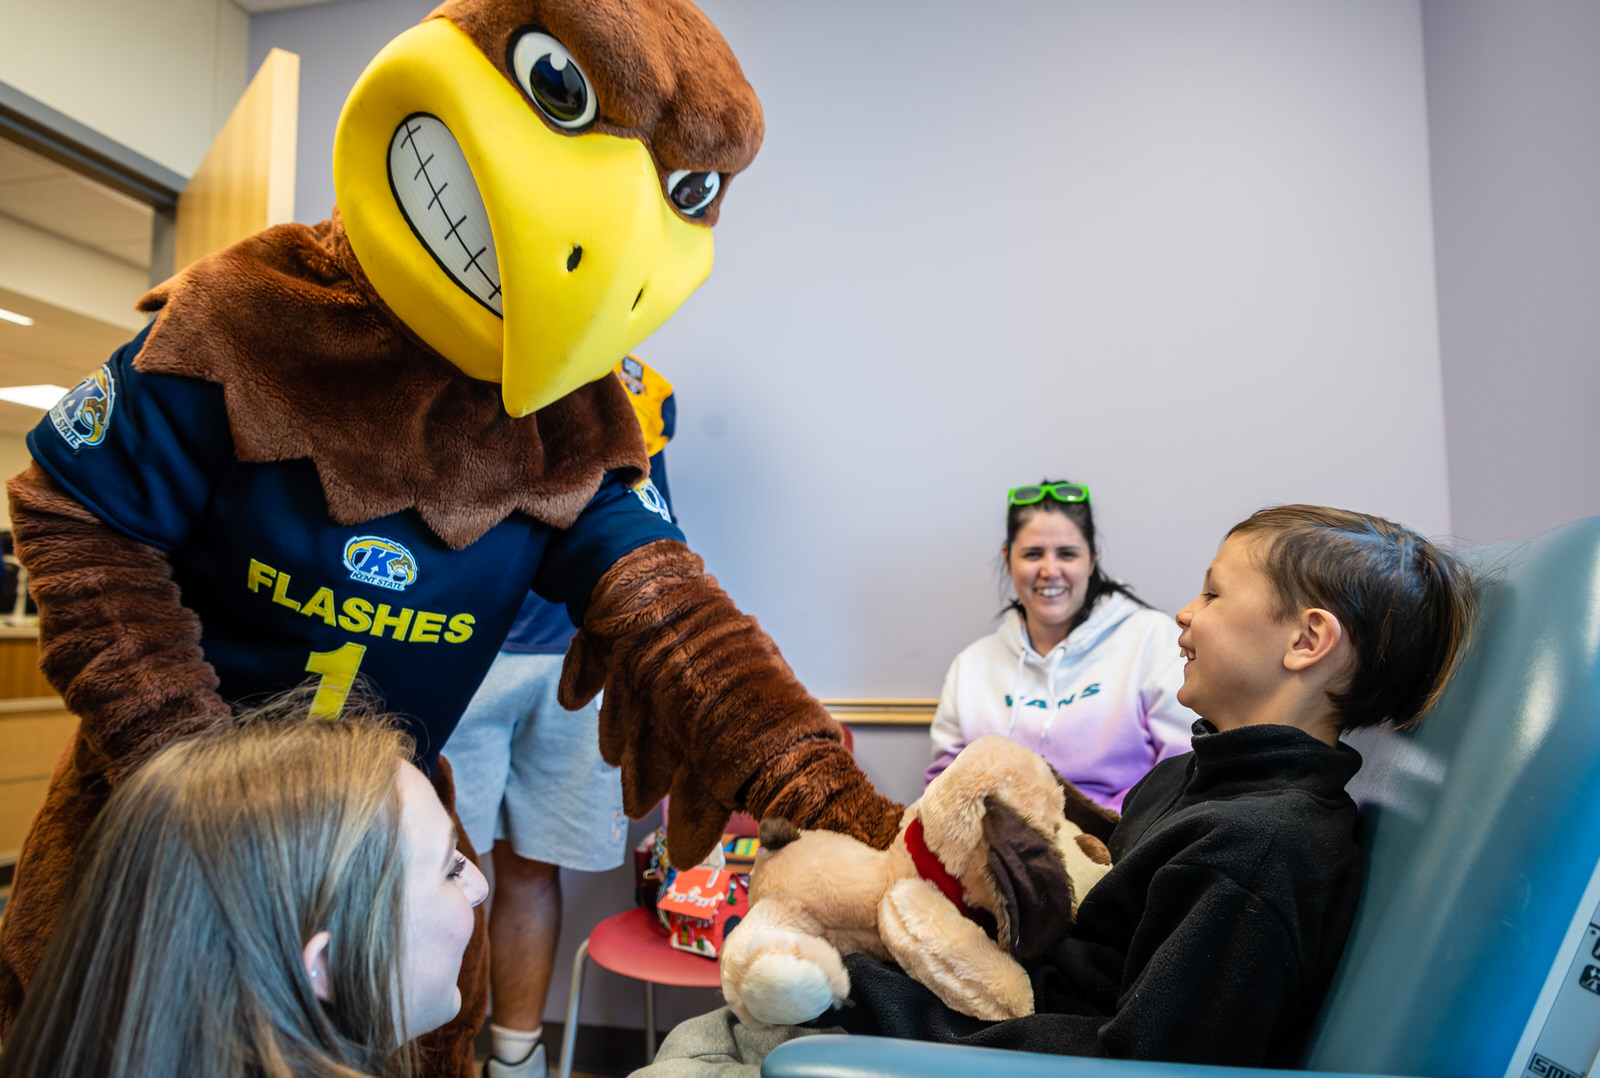 Flash joined football players, cheer and dance members and the marching band in visiting kids at Children's Medical Center Plano ahead of the 2019 Frisco Bowl